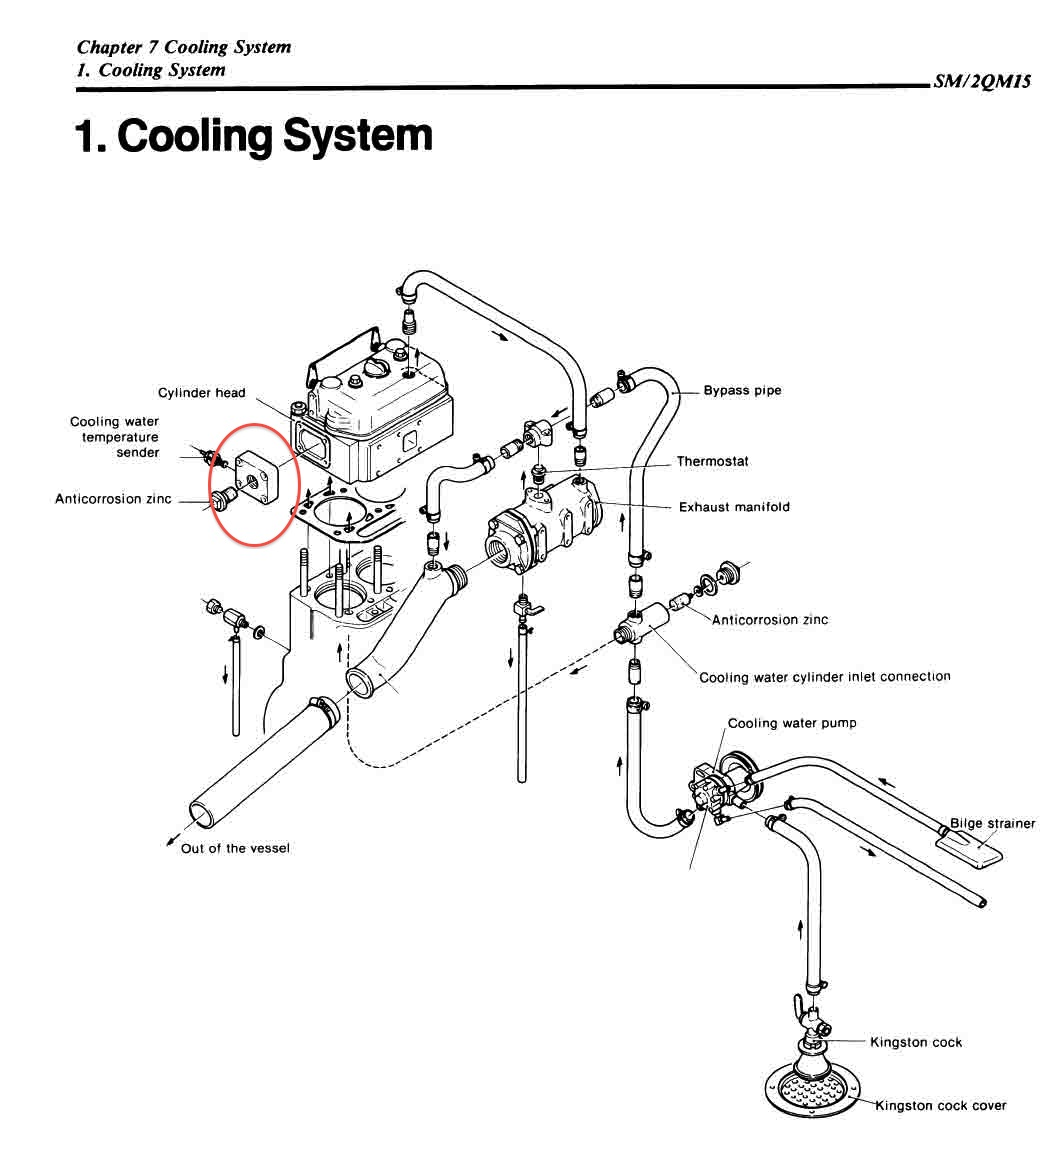 Need help. Yanmar 2QM15: Cylinder Inlet Connection moves